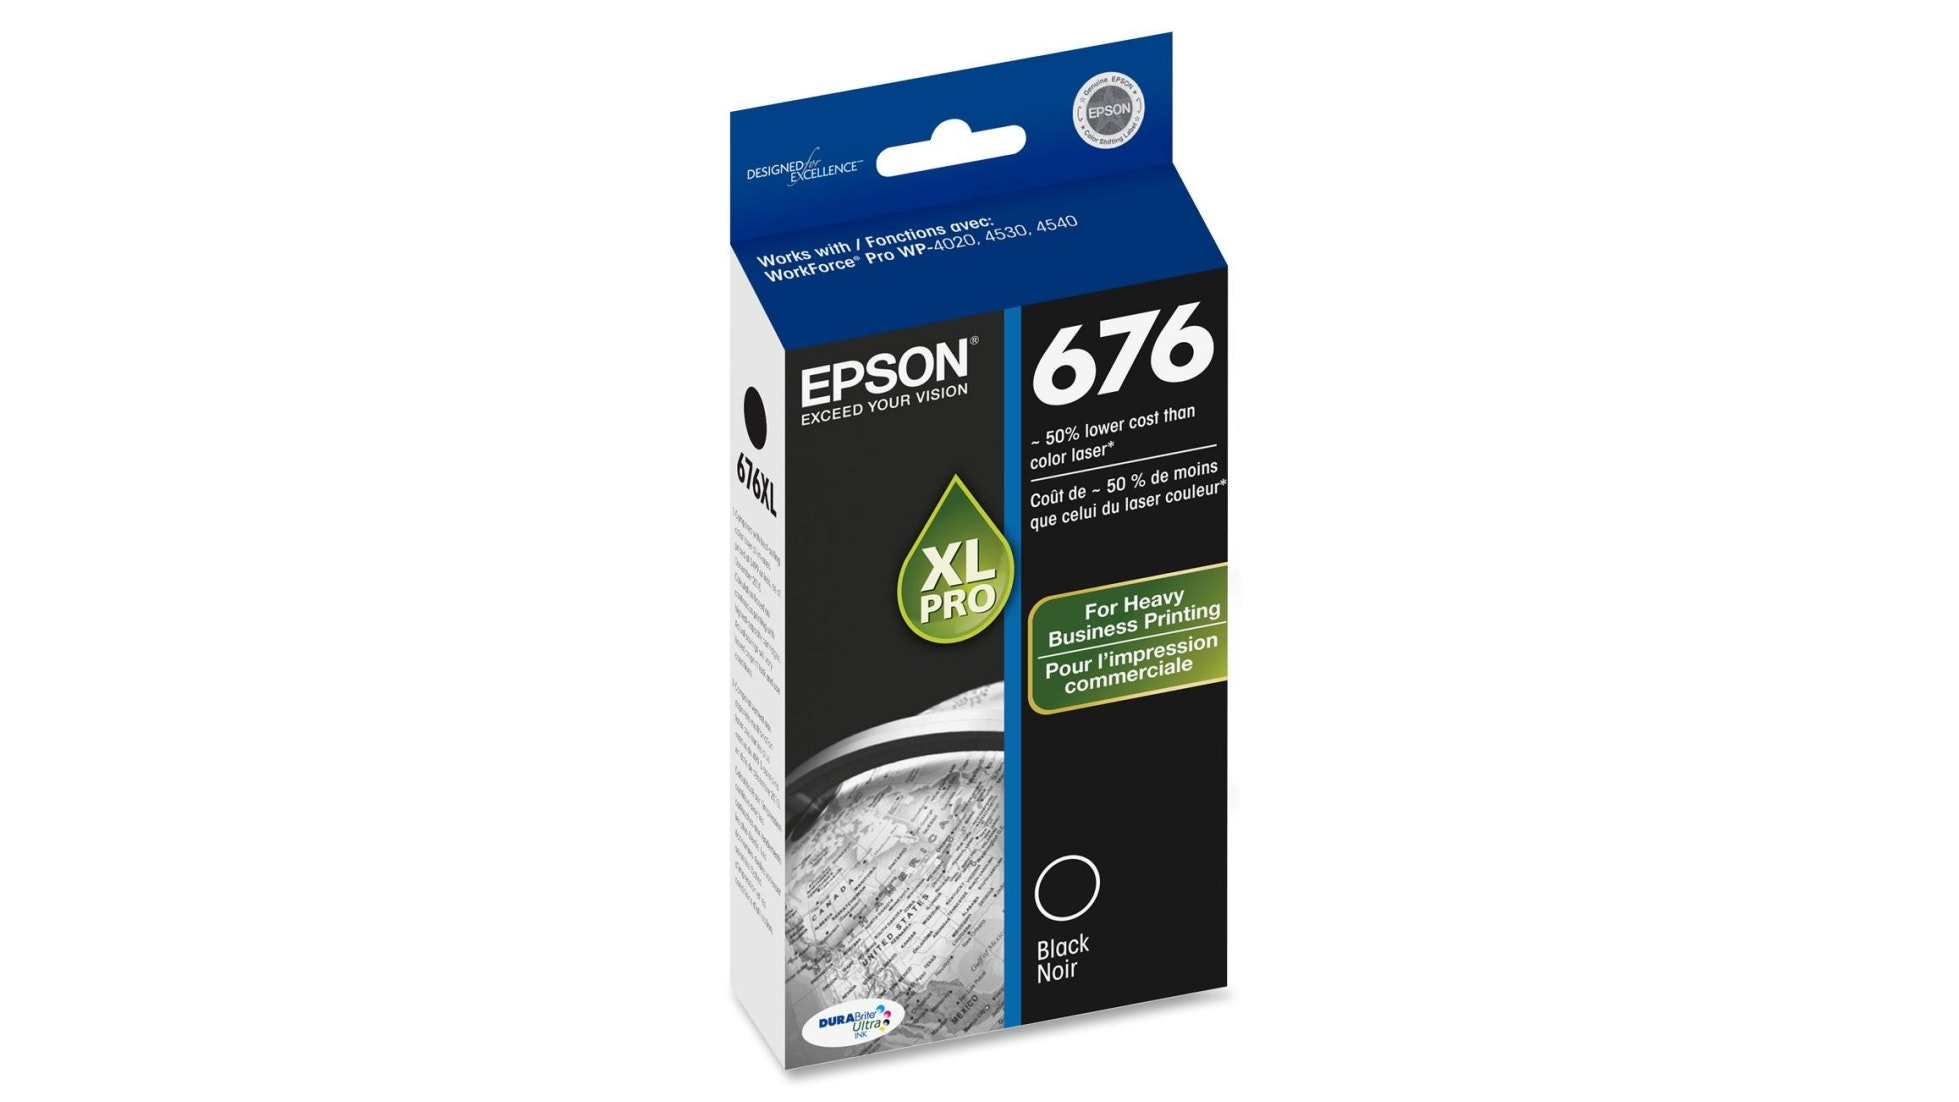 Epson 676XL Ink Cartridge - Black